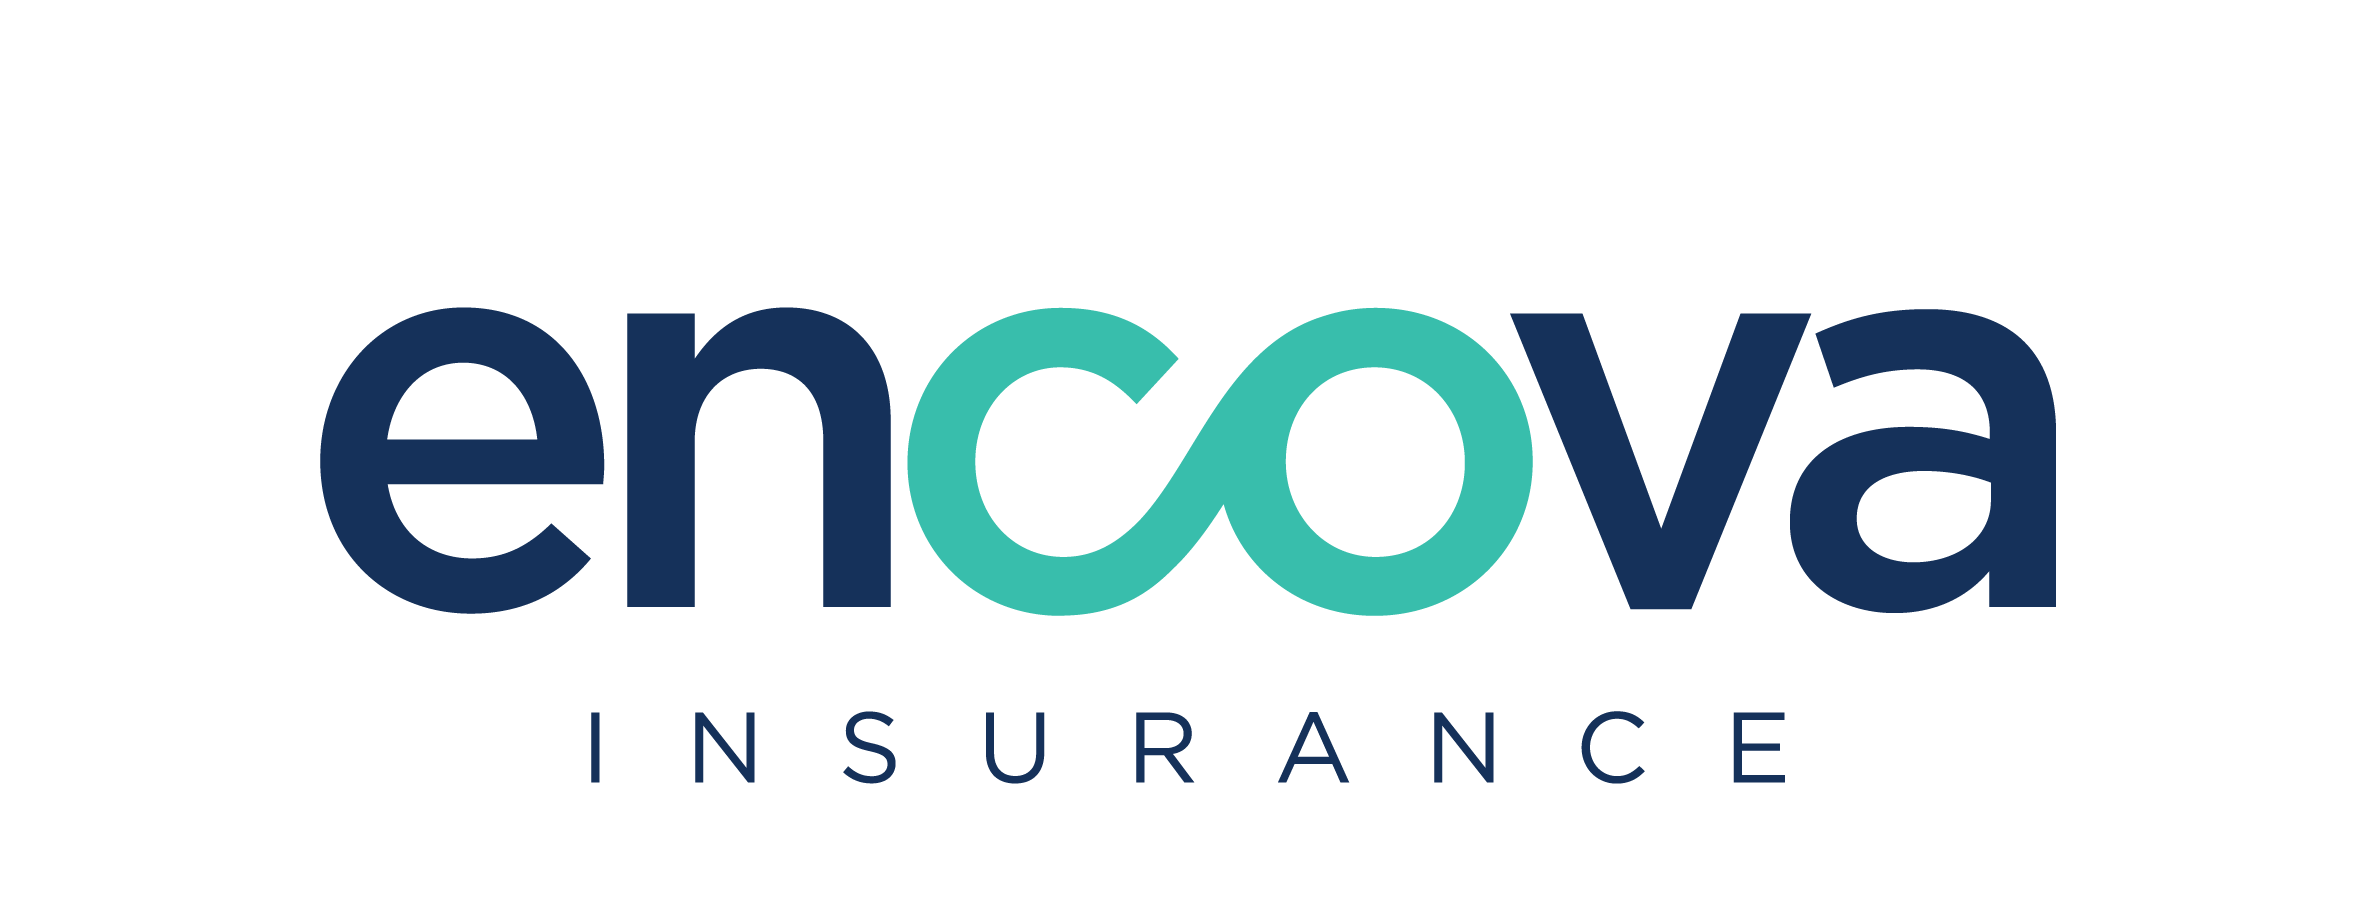 Encova Insurance.png